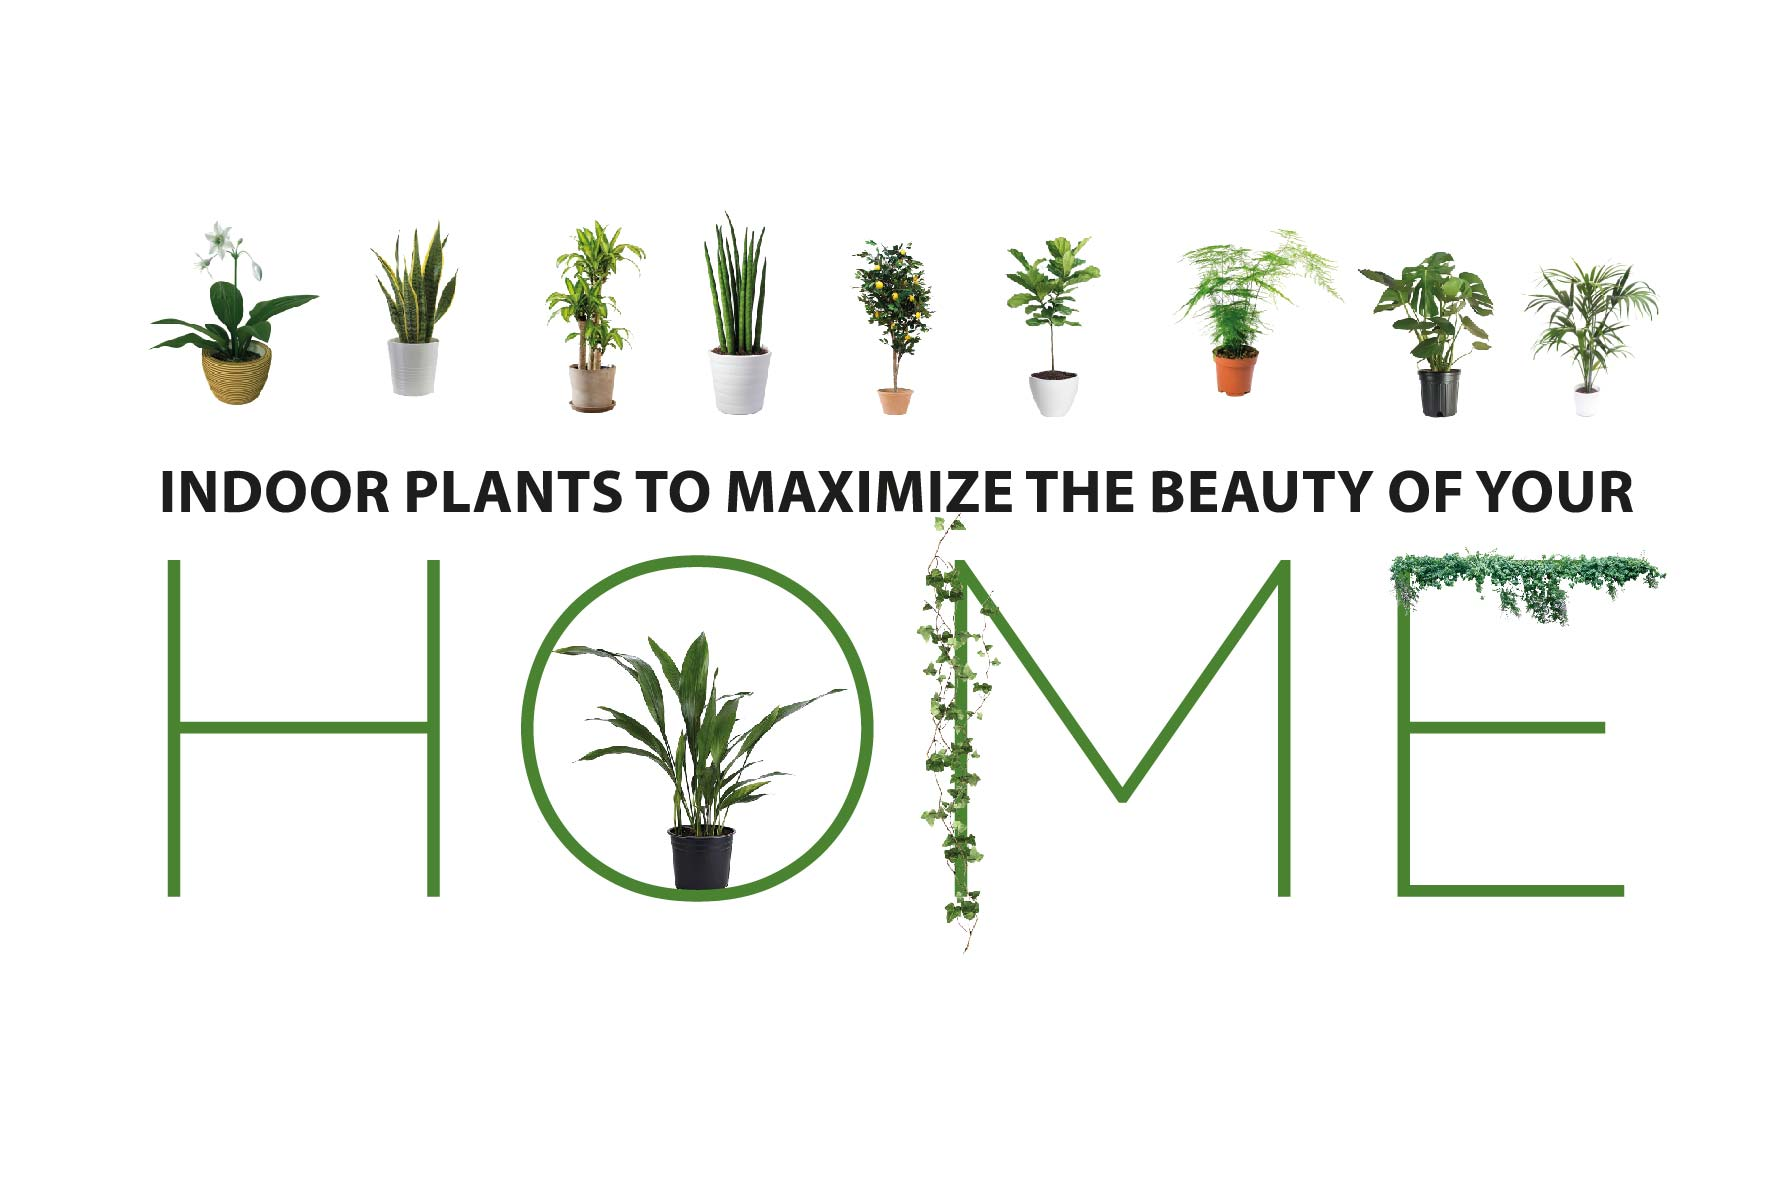 Indoor plants to maximize the beauty of your Home